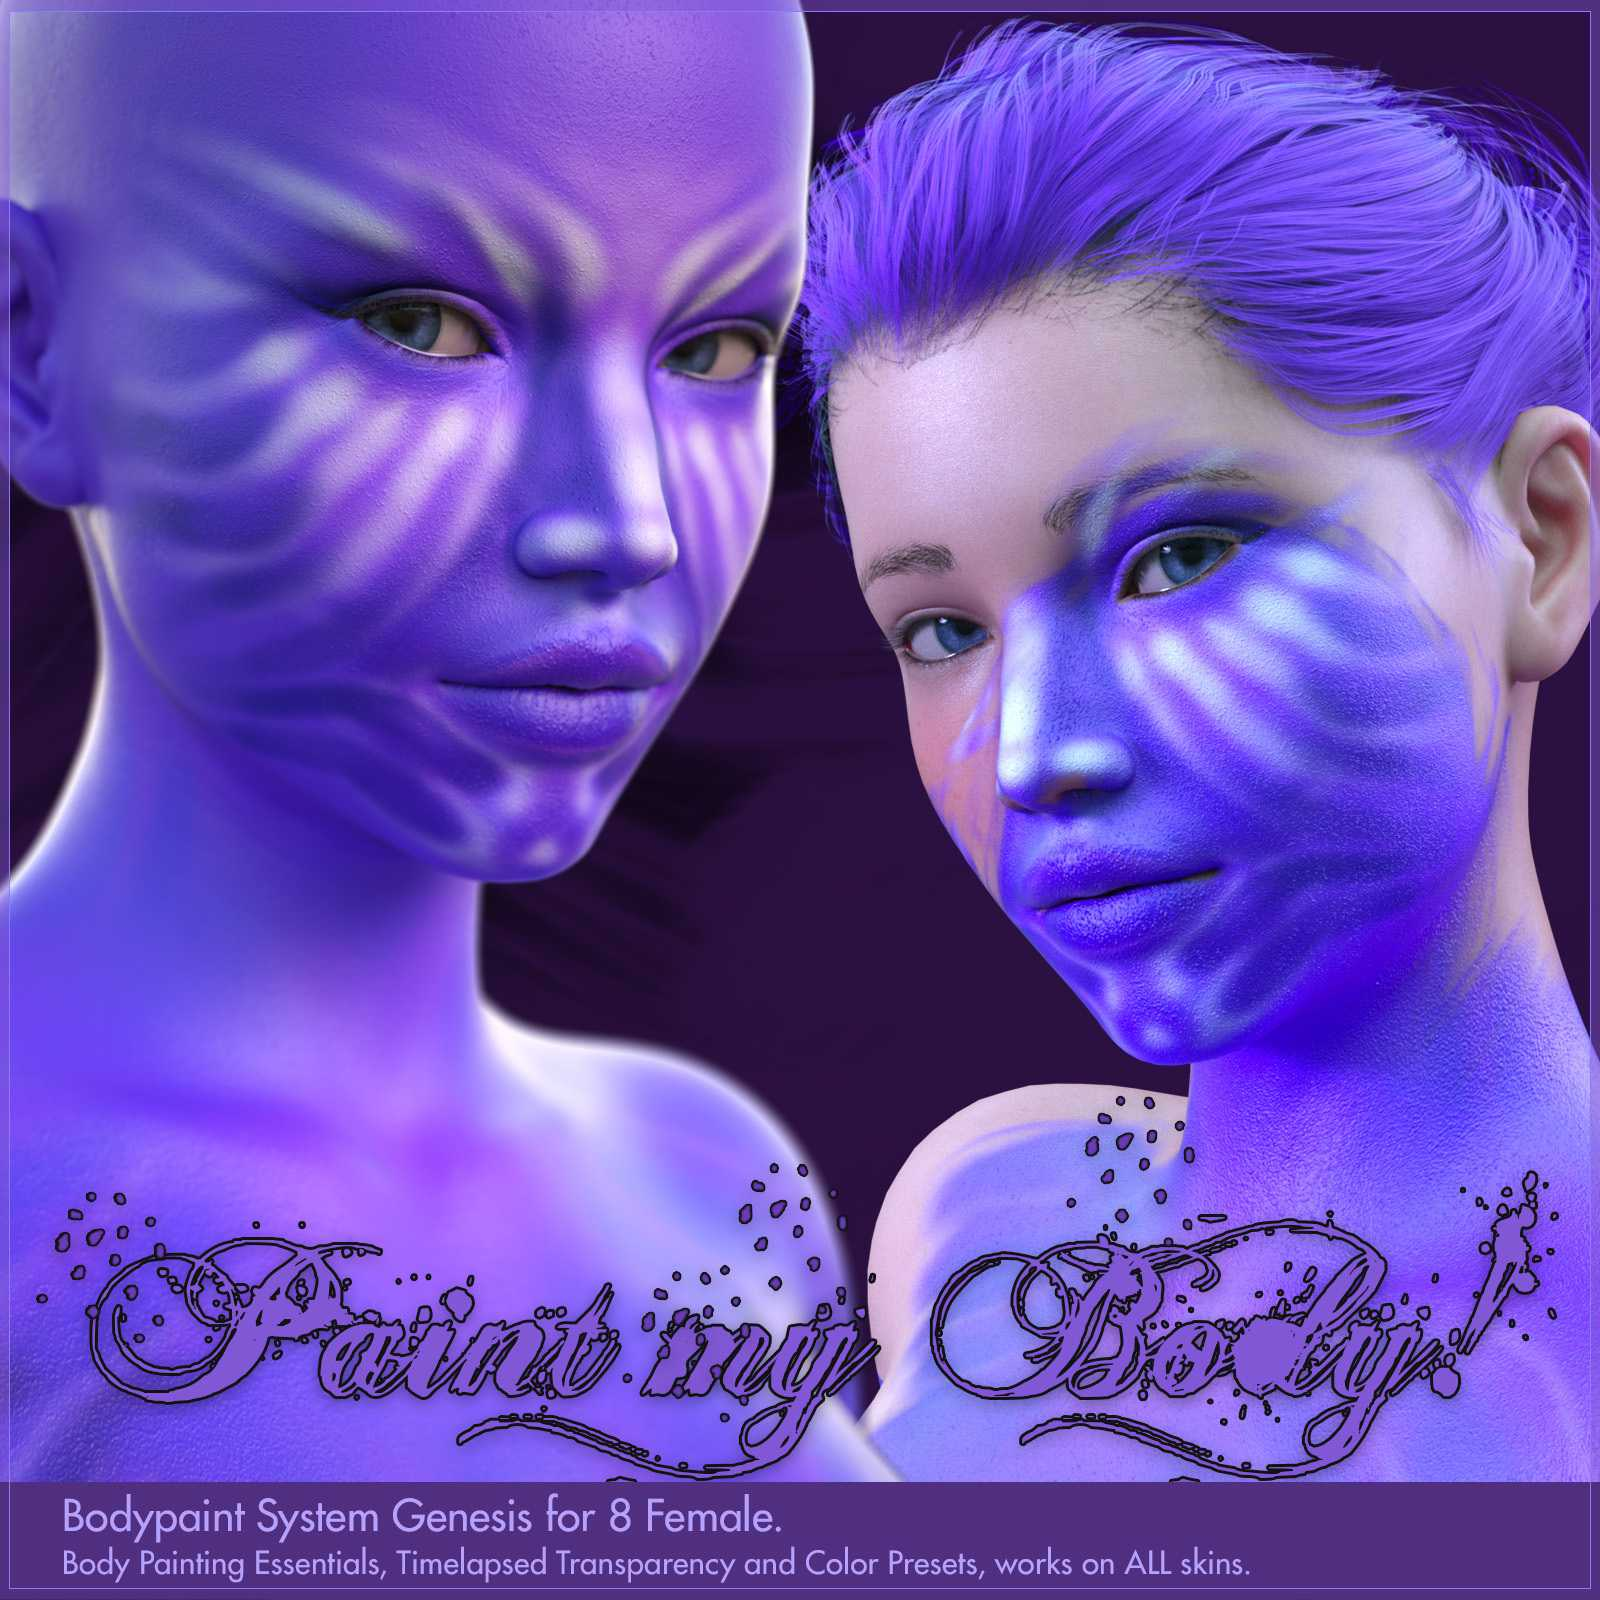 Bodypaint for Genesis 8 Female